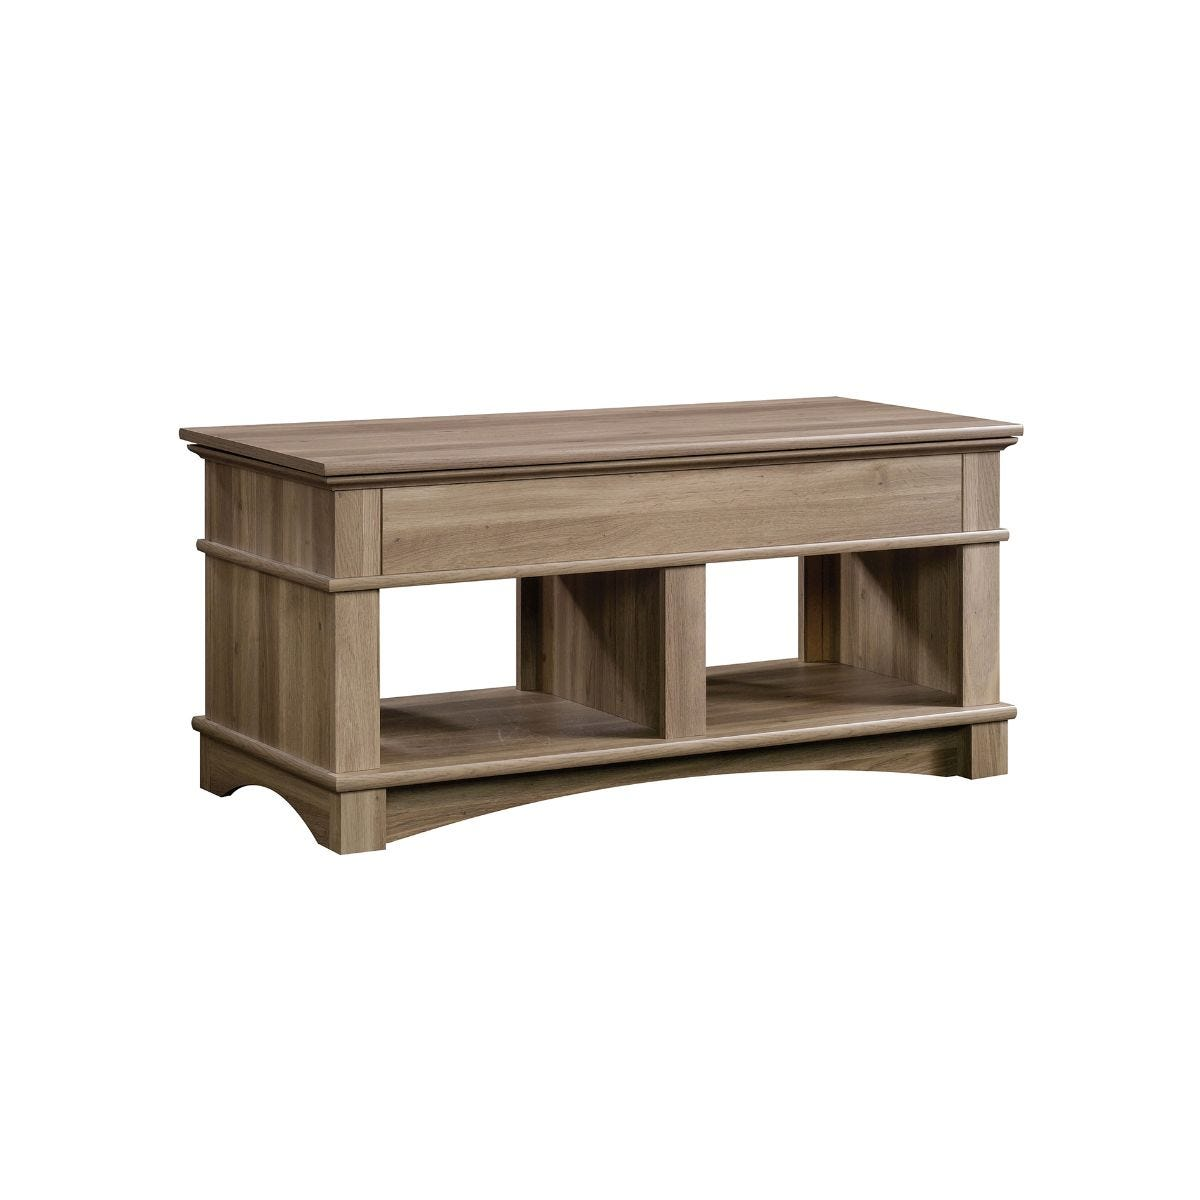 Barrister Home Lift Top Coffee Table